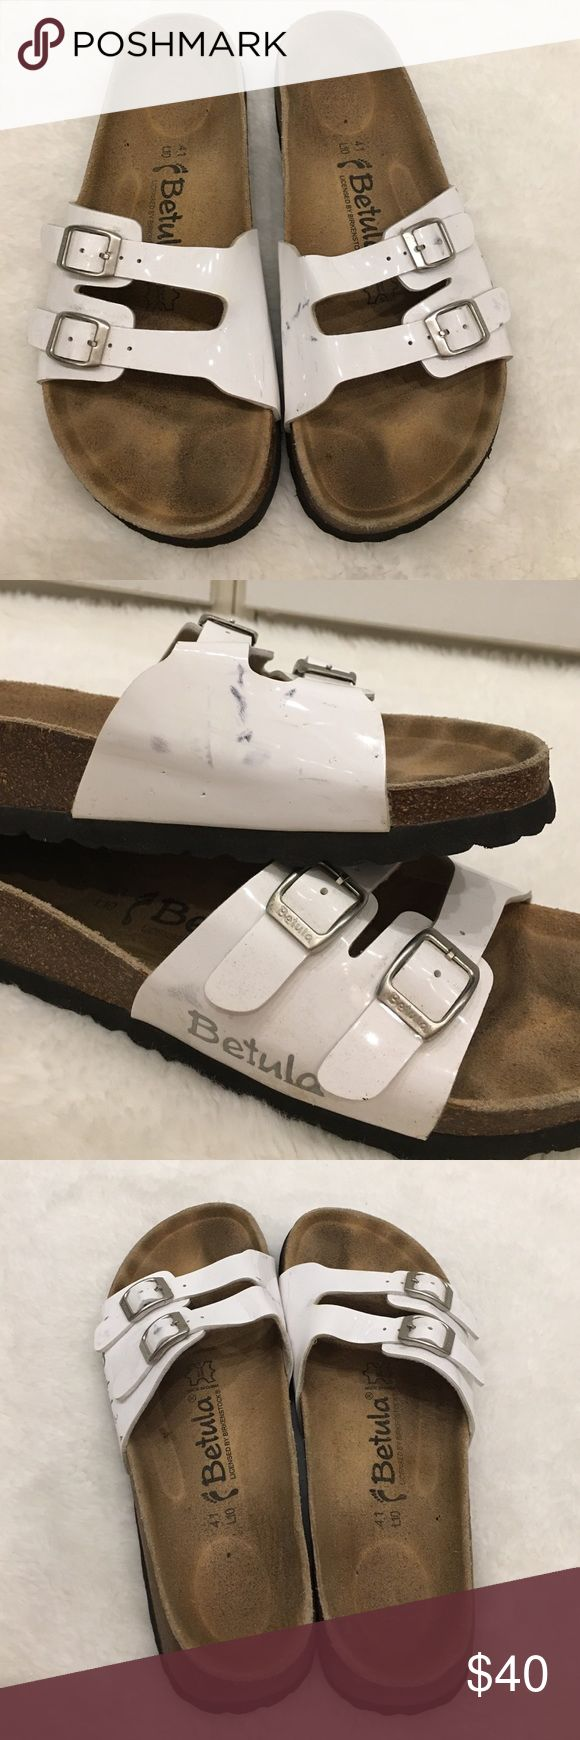 Betula by Birkenstock White Strappy Sandals 10 Preowned authentic Betula White Strappy Sandals size 10. They have signs of wear like black marker stains. I haven't tried to remove the stains. Please look at pictures for better reference. Happy shopping! Birkenstock Shoes Sandals